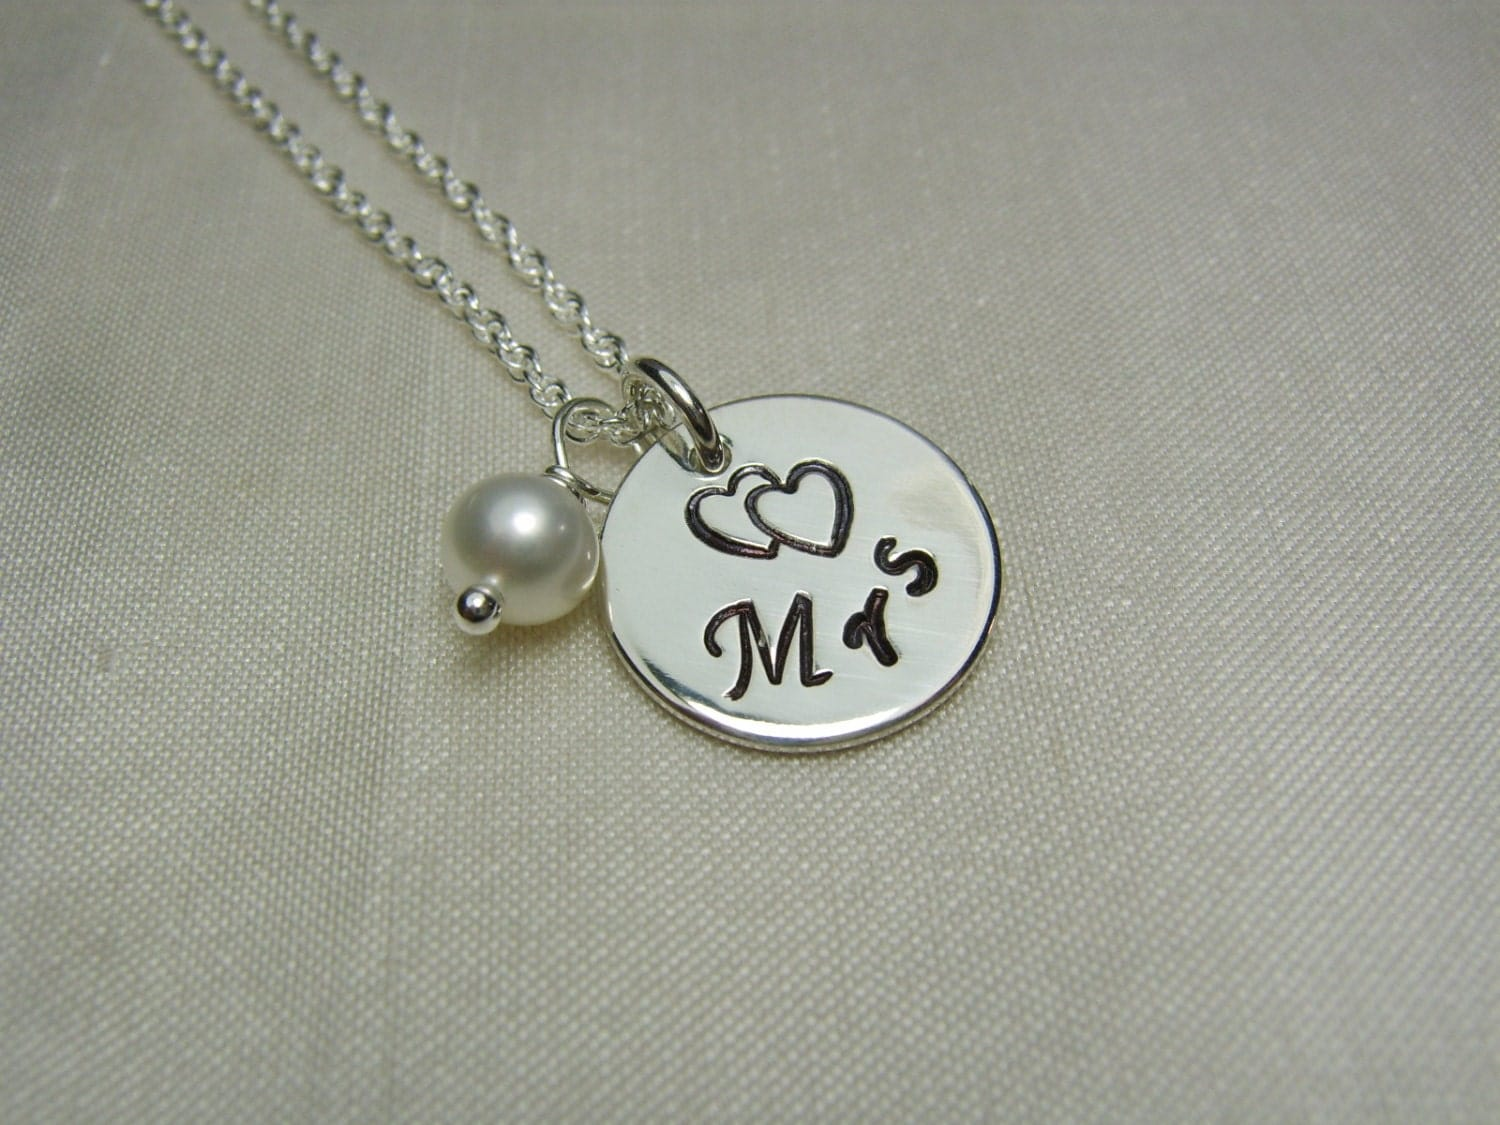 Personalised Wedding Jewellery Gifts : Bridal Jewelry Personalized Necklace Bridal by MesmericJewelry